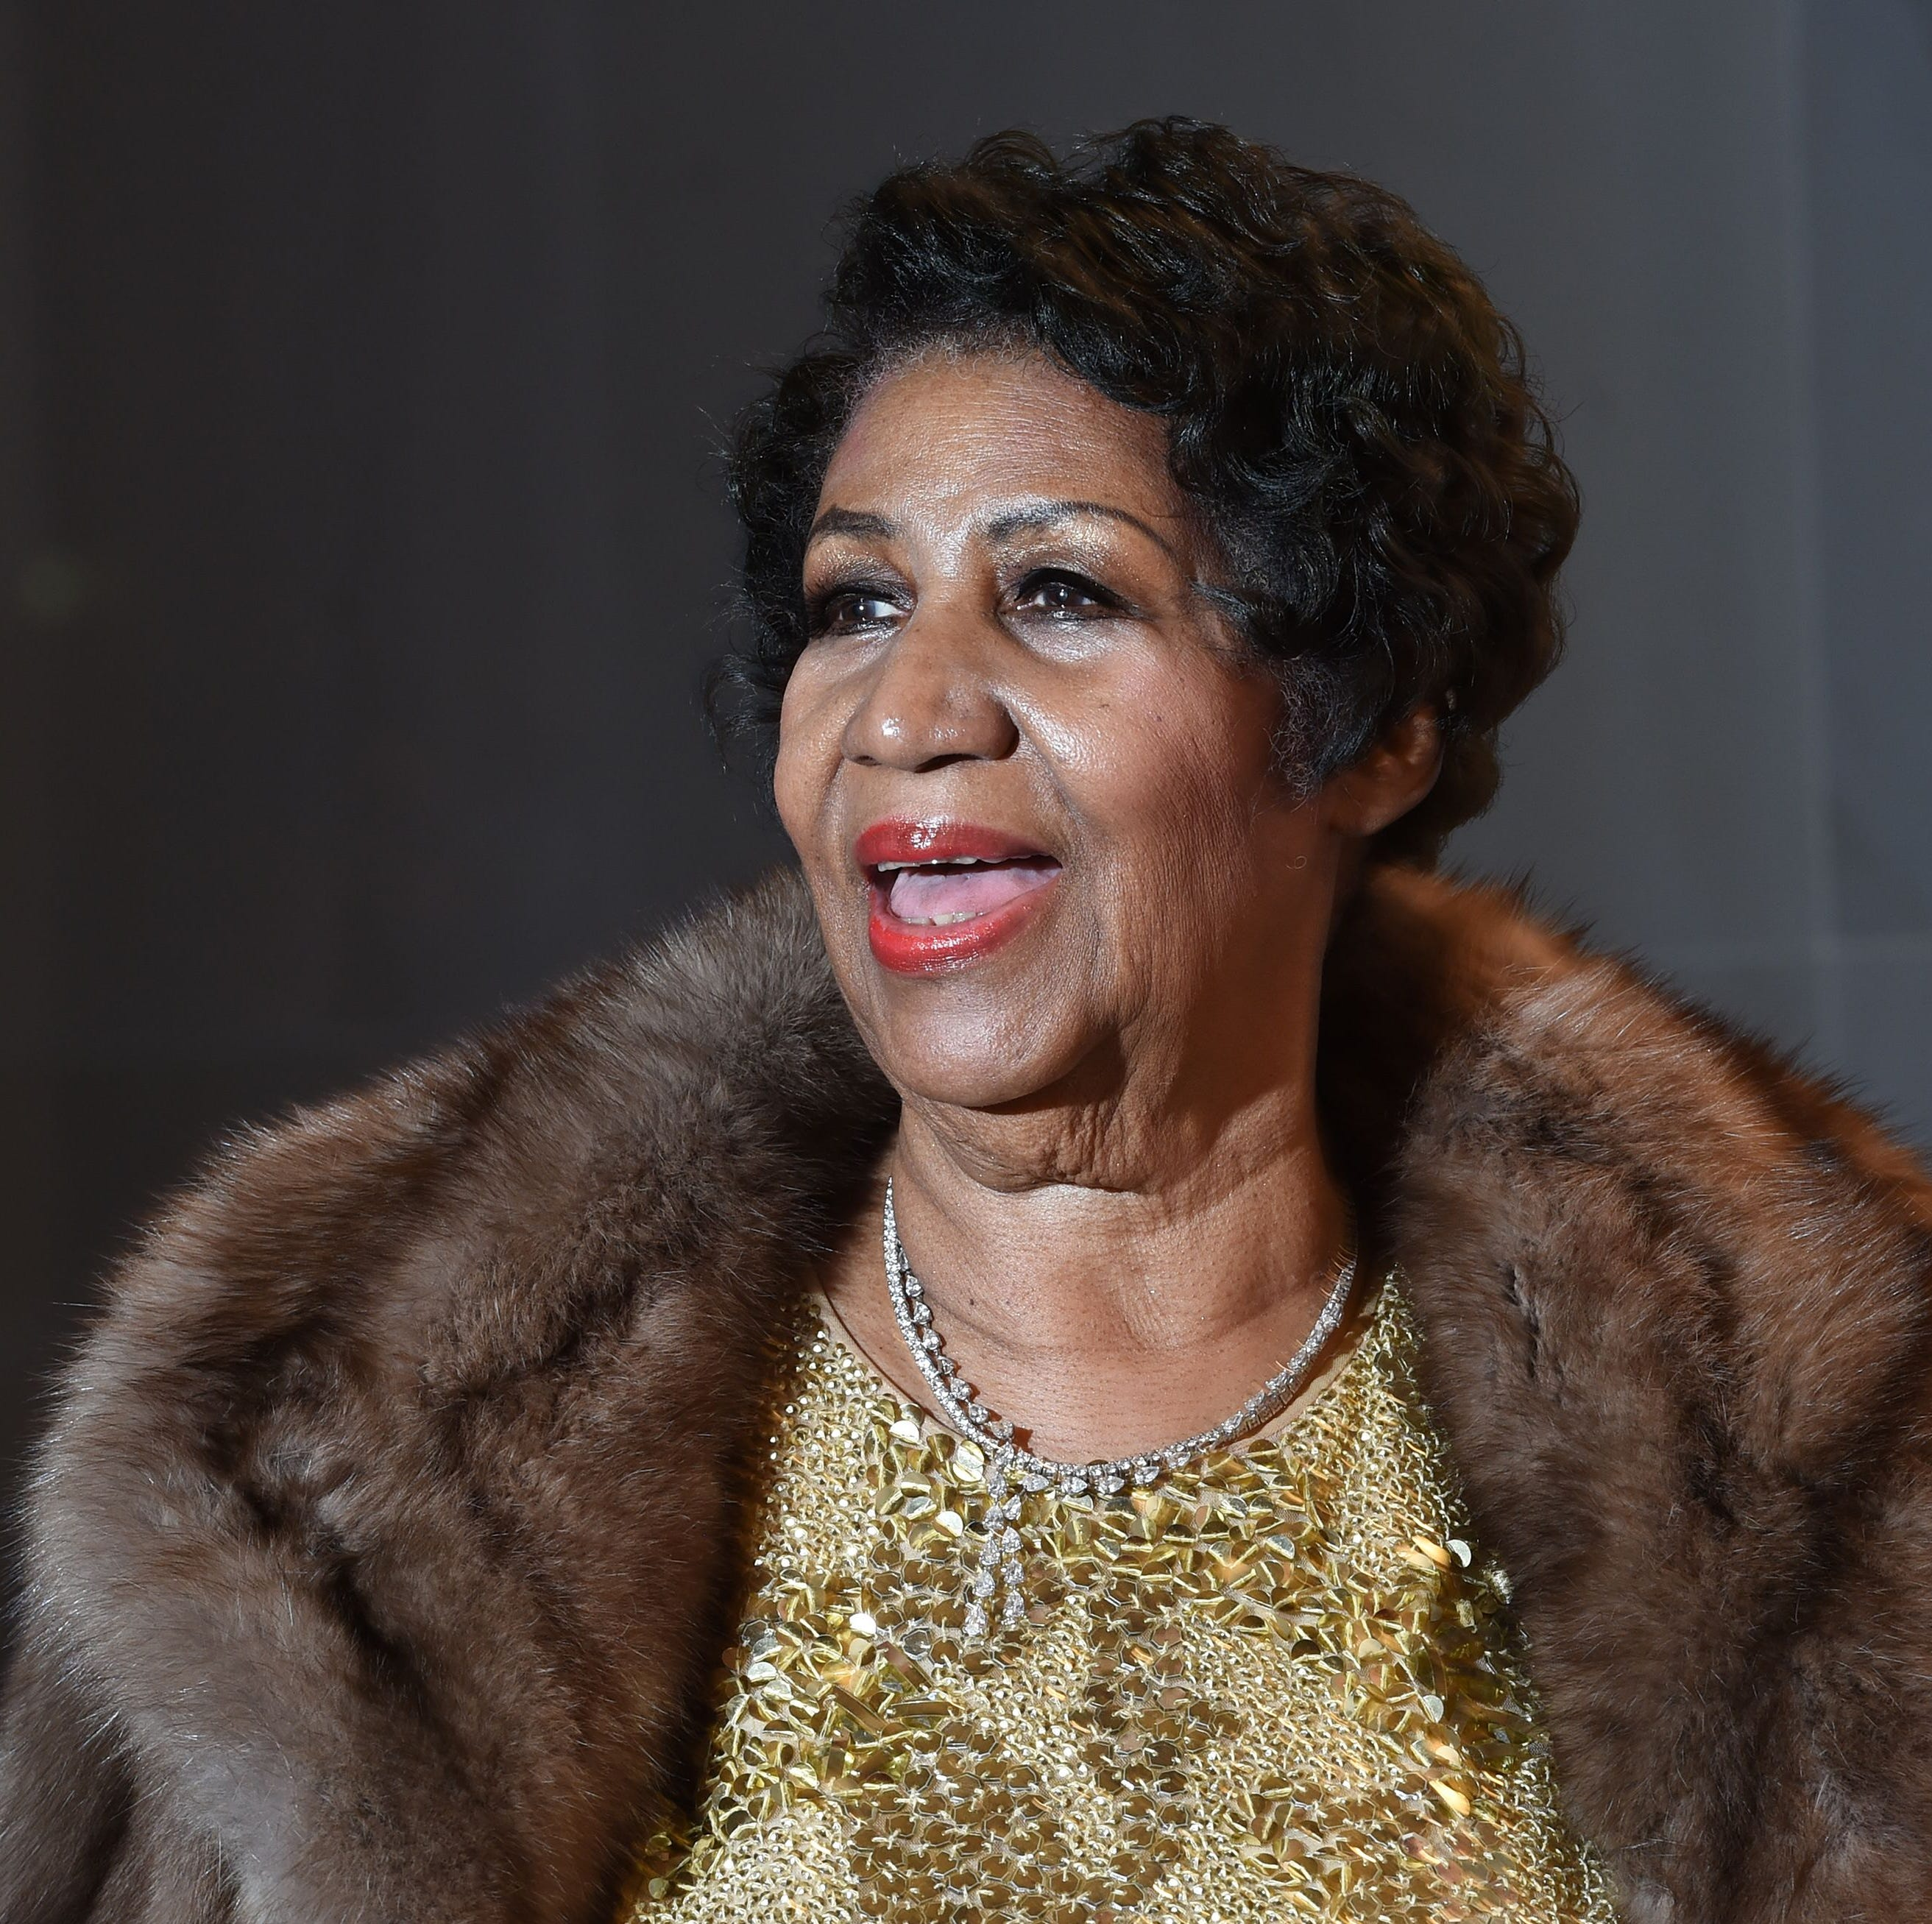 Independent Aretha Franklin was 'epitome of self-determination'